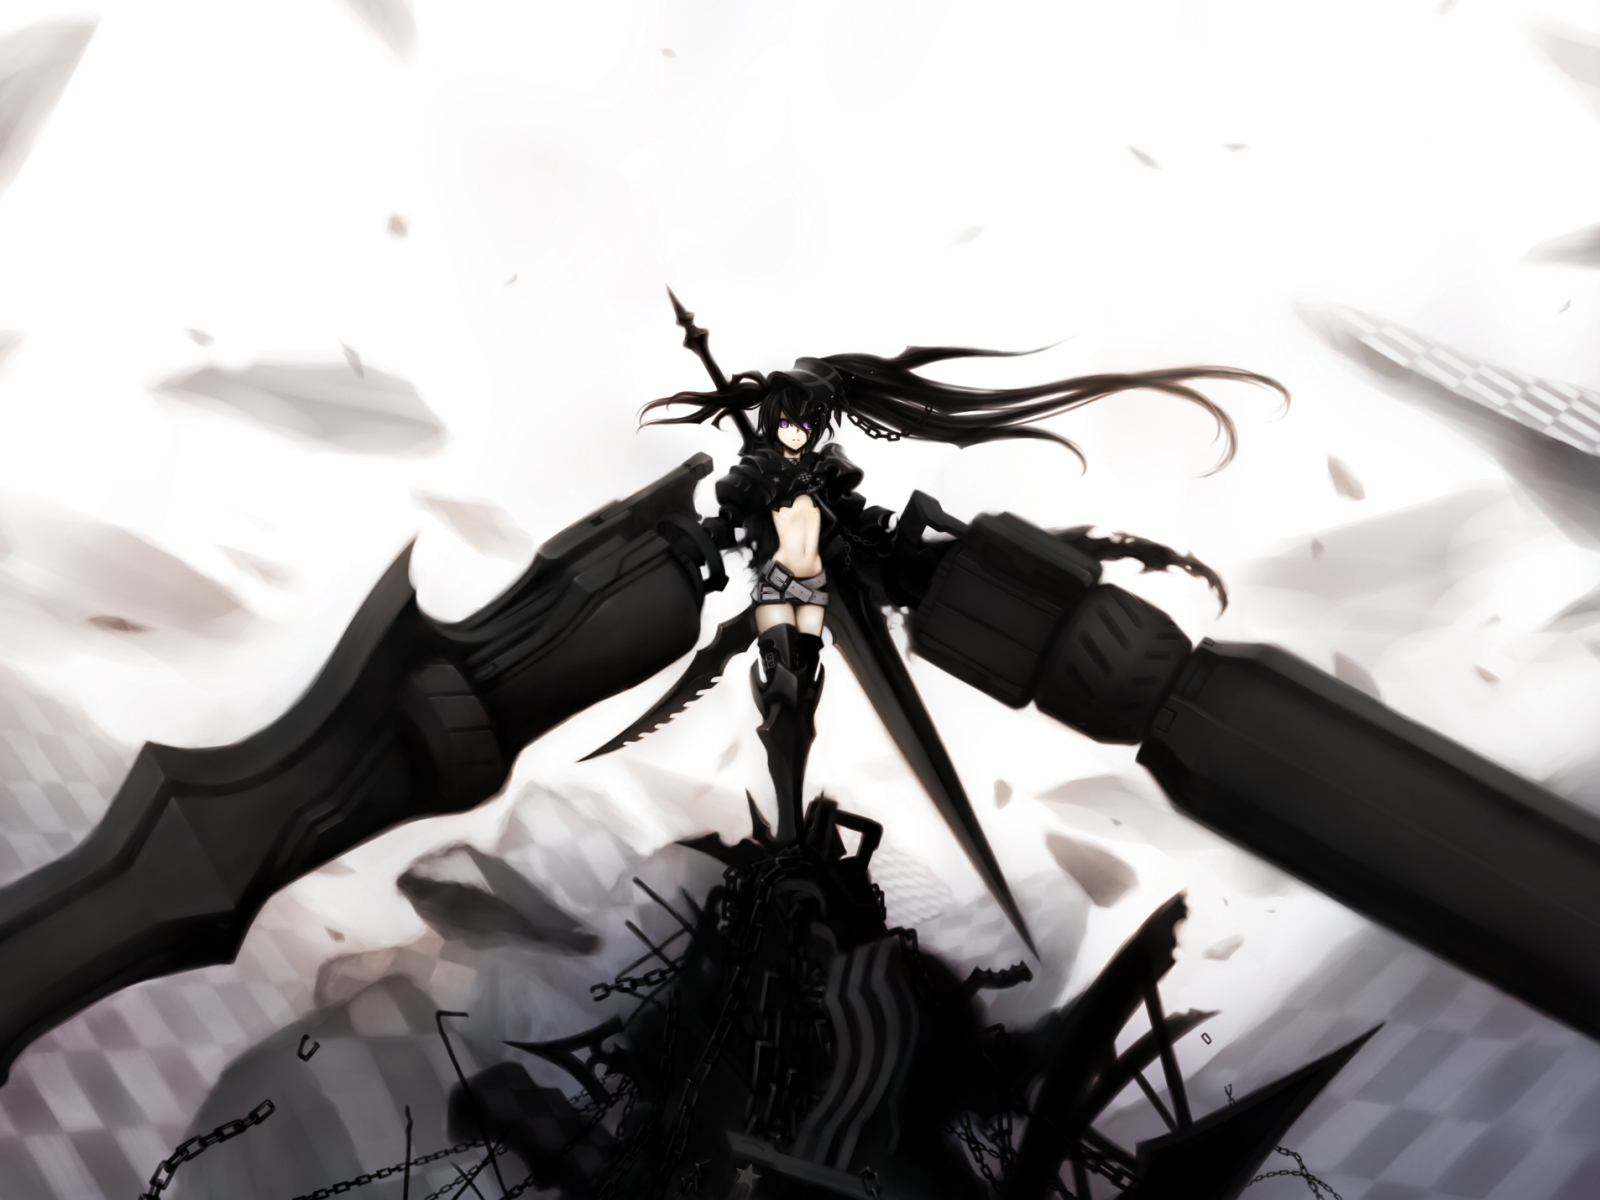 HD Cool Anime Backgrounds - wallpaper.wiki